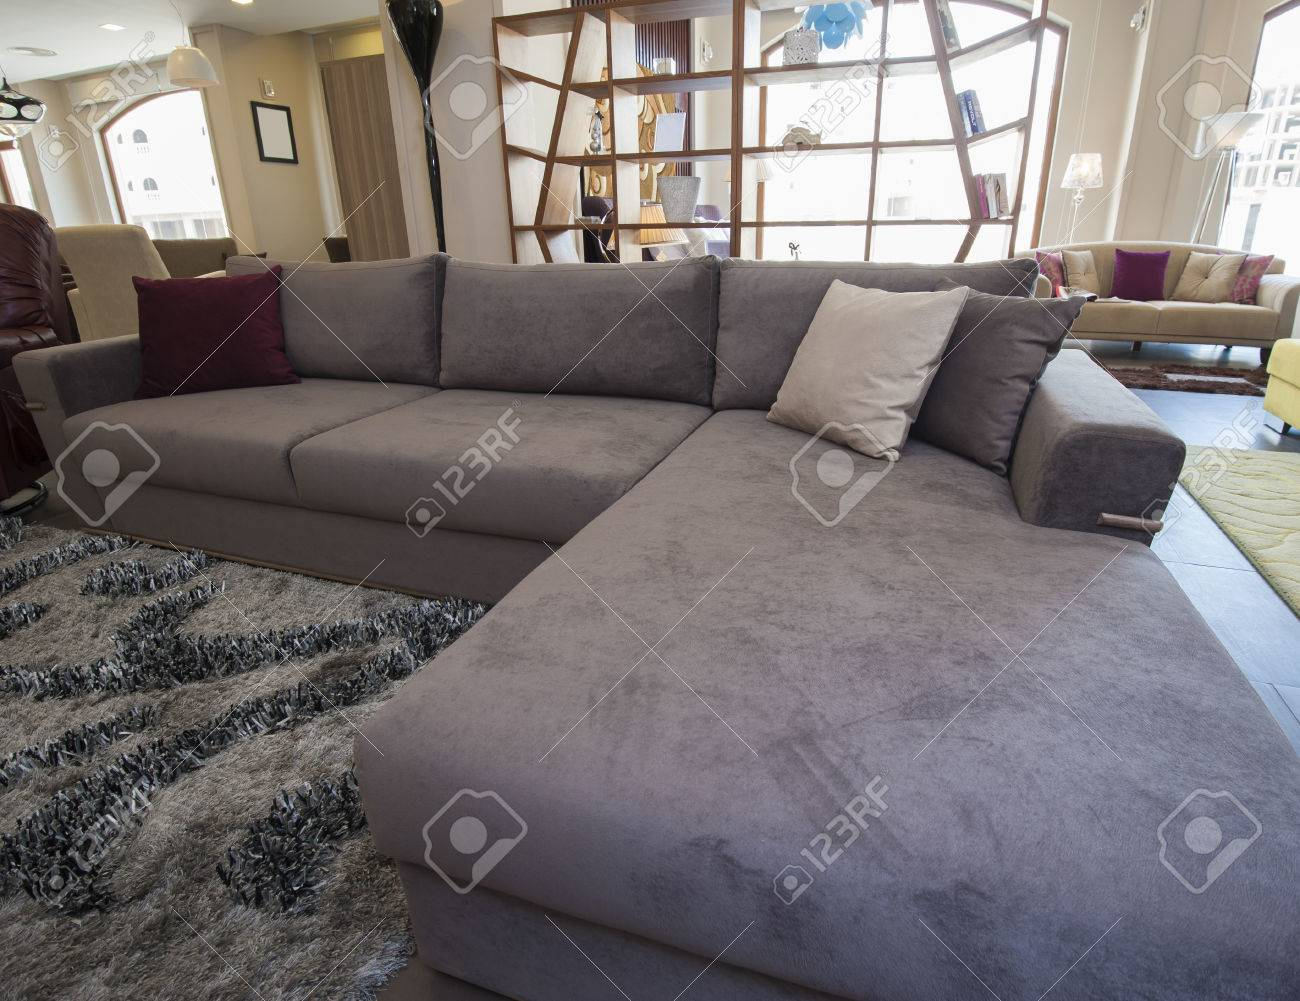 Large L-shaped Corner Sofa In Living Room Furniture Show Home Stock ...